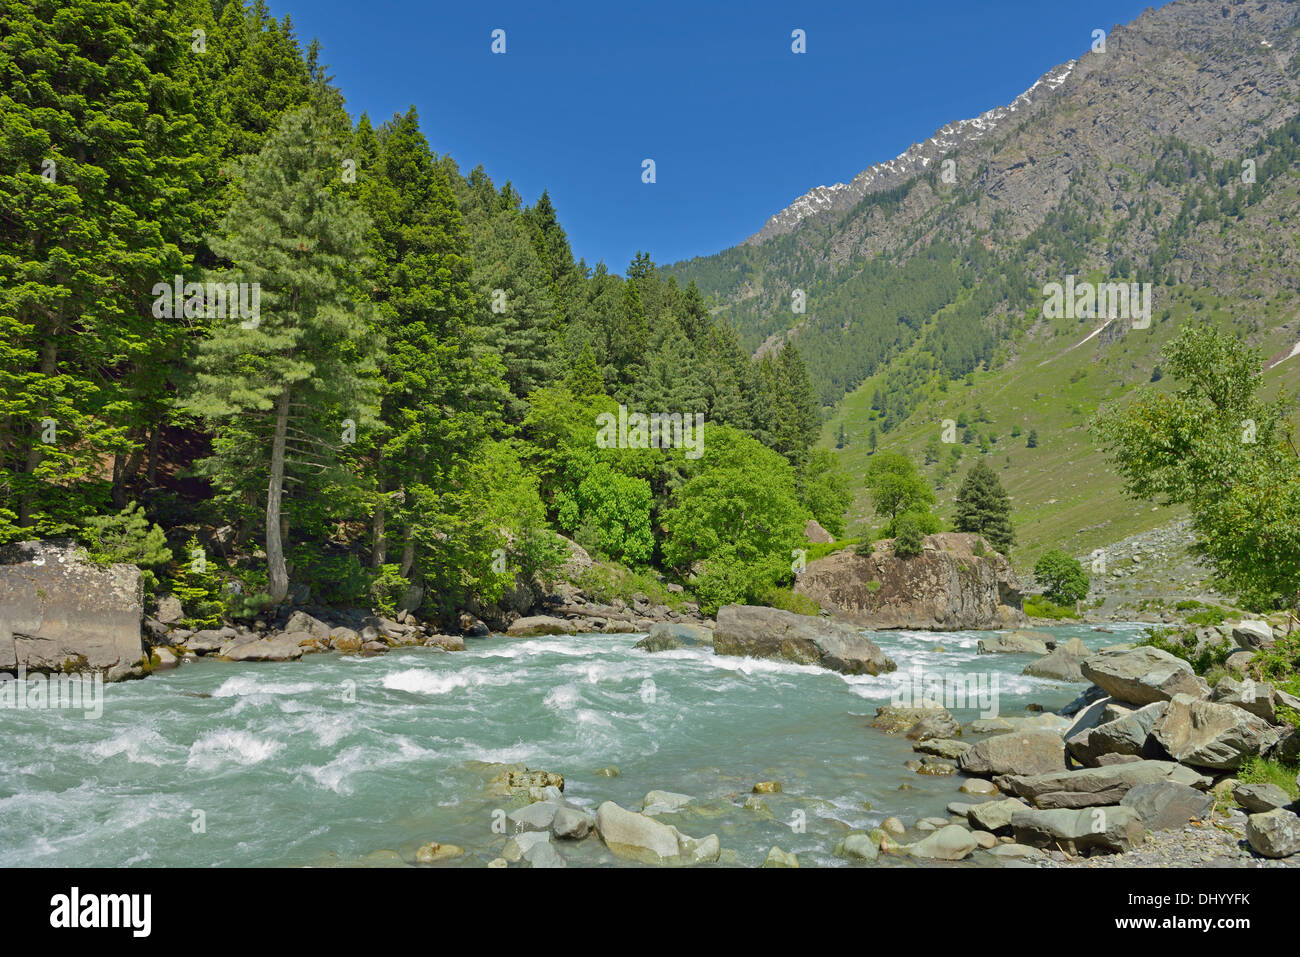 Indus river valley in Kashmir Stock Photo, Royalty Free Image ...